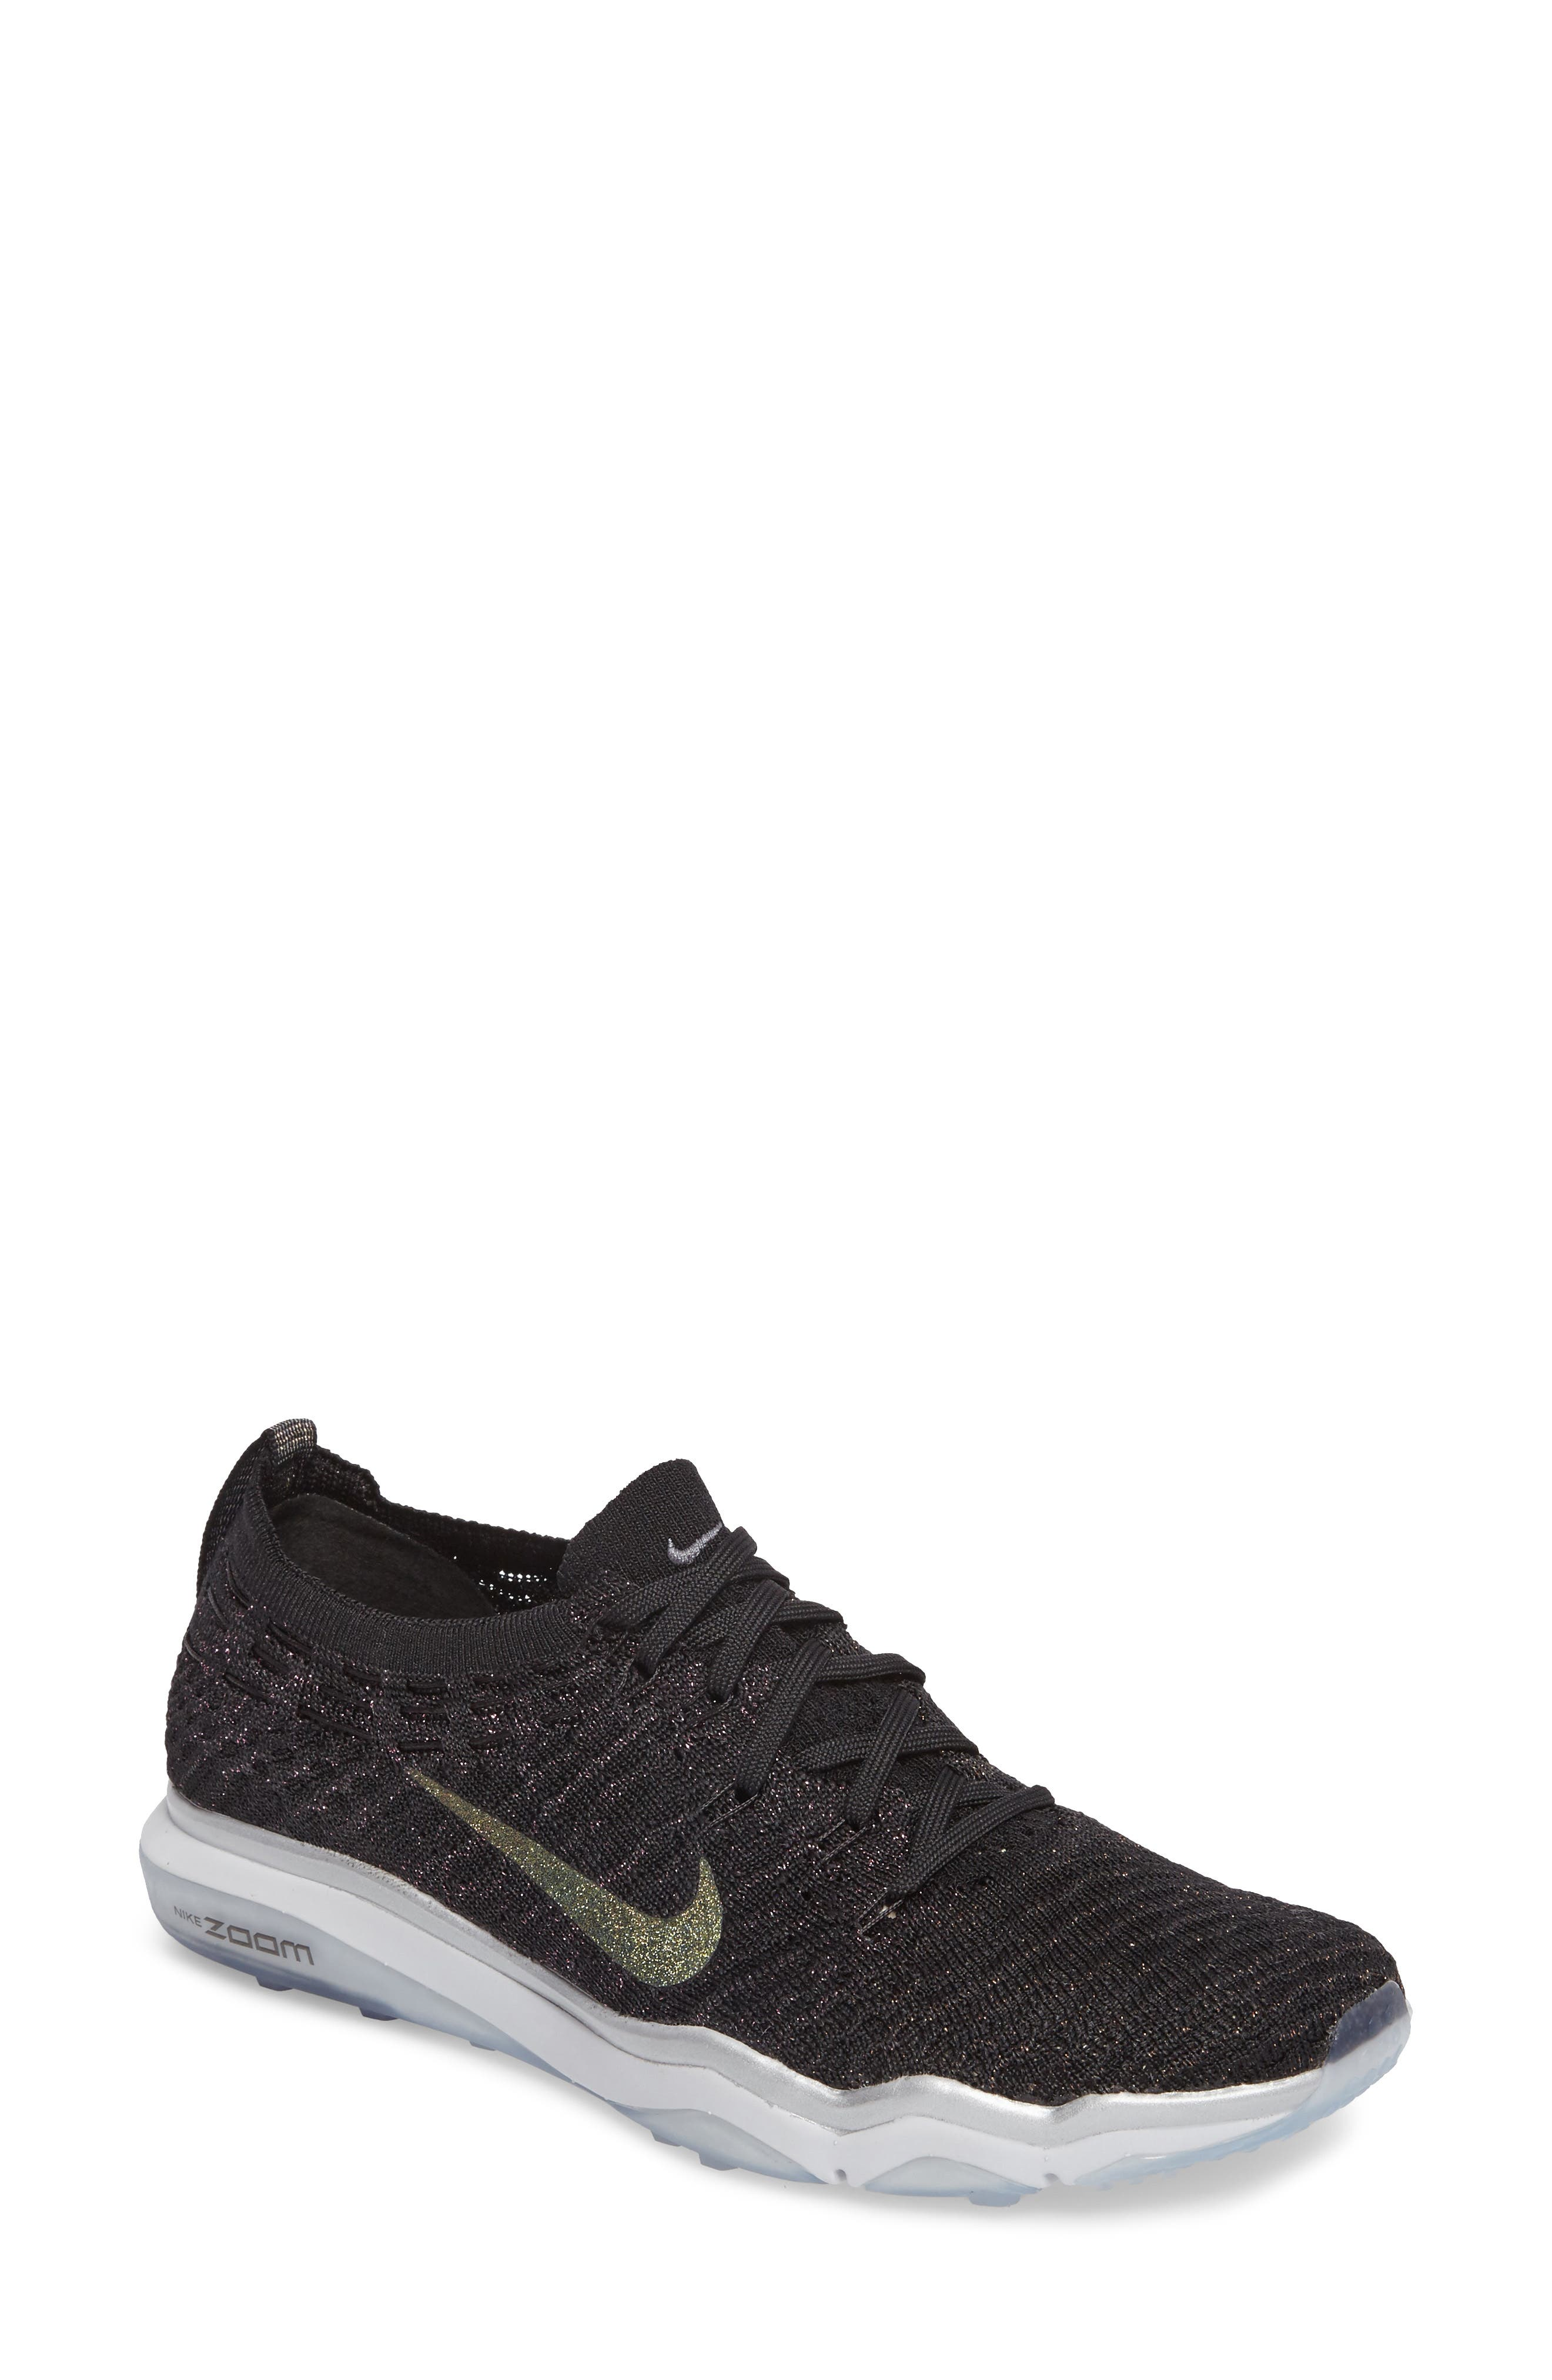 Air Zoom Fearless Flyknit Metallic Training Shoe,                         Main,                         color, 001